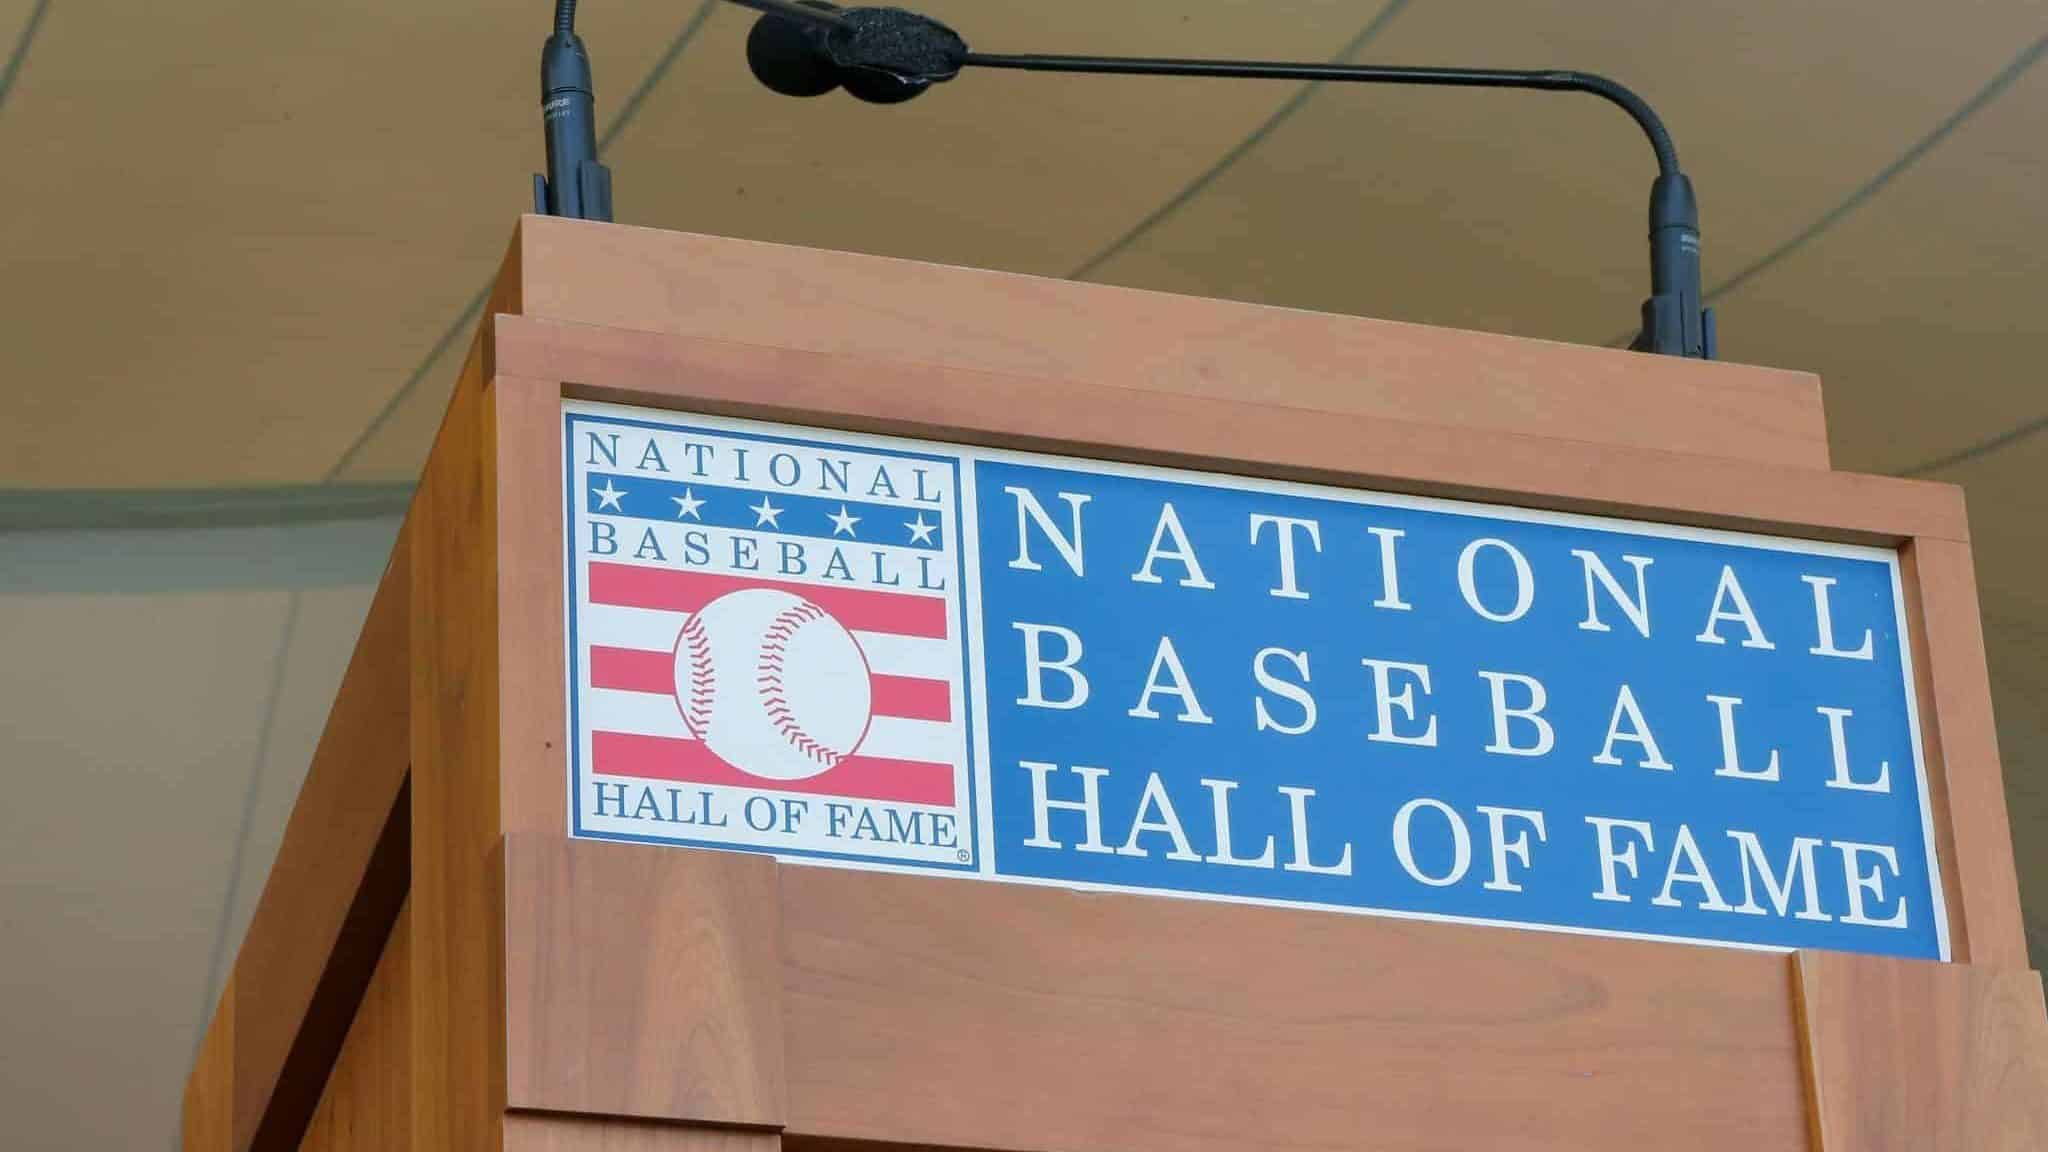 COOPERSTOWN, NY - JULY 29: The podium is seen at Clark Sports Center during the Baseball Hall of Fame induction ceremony on July 29, 2018 in Cooperstown, New York.